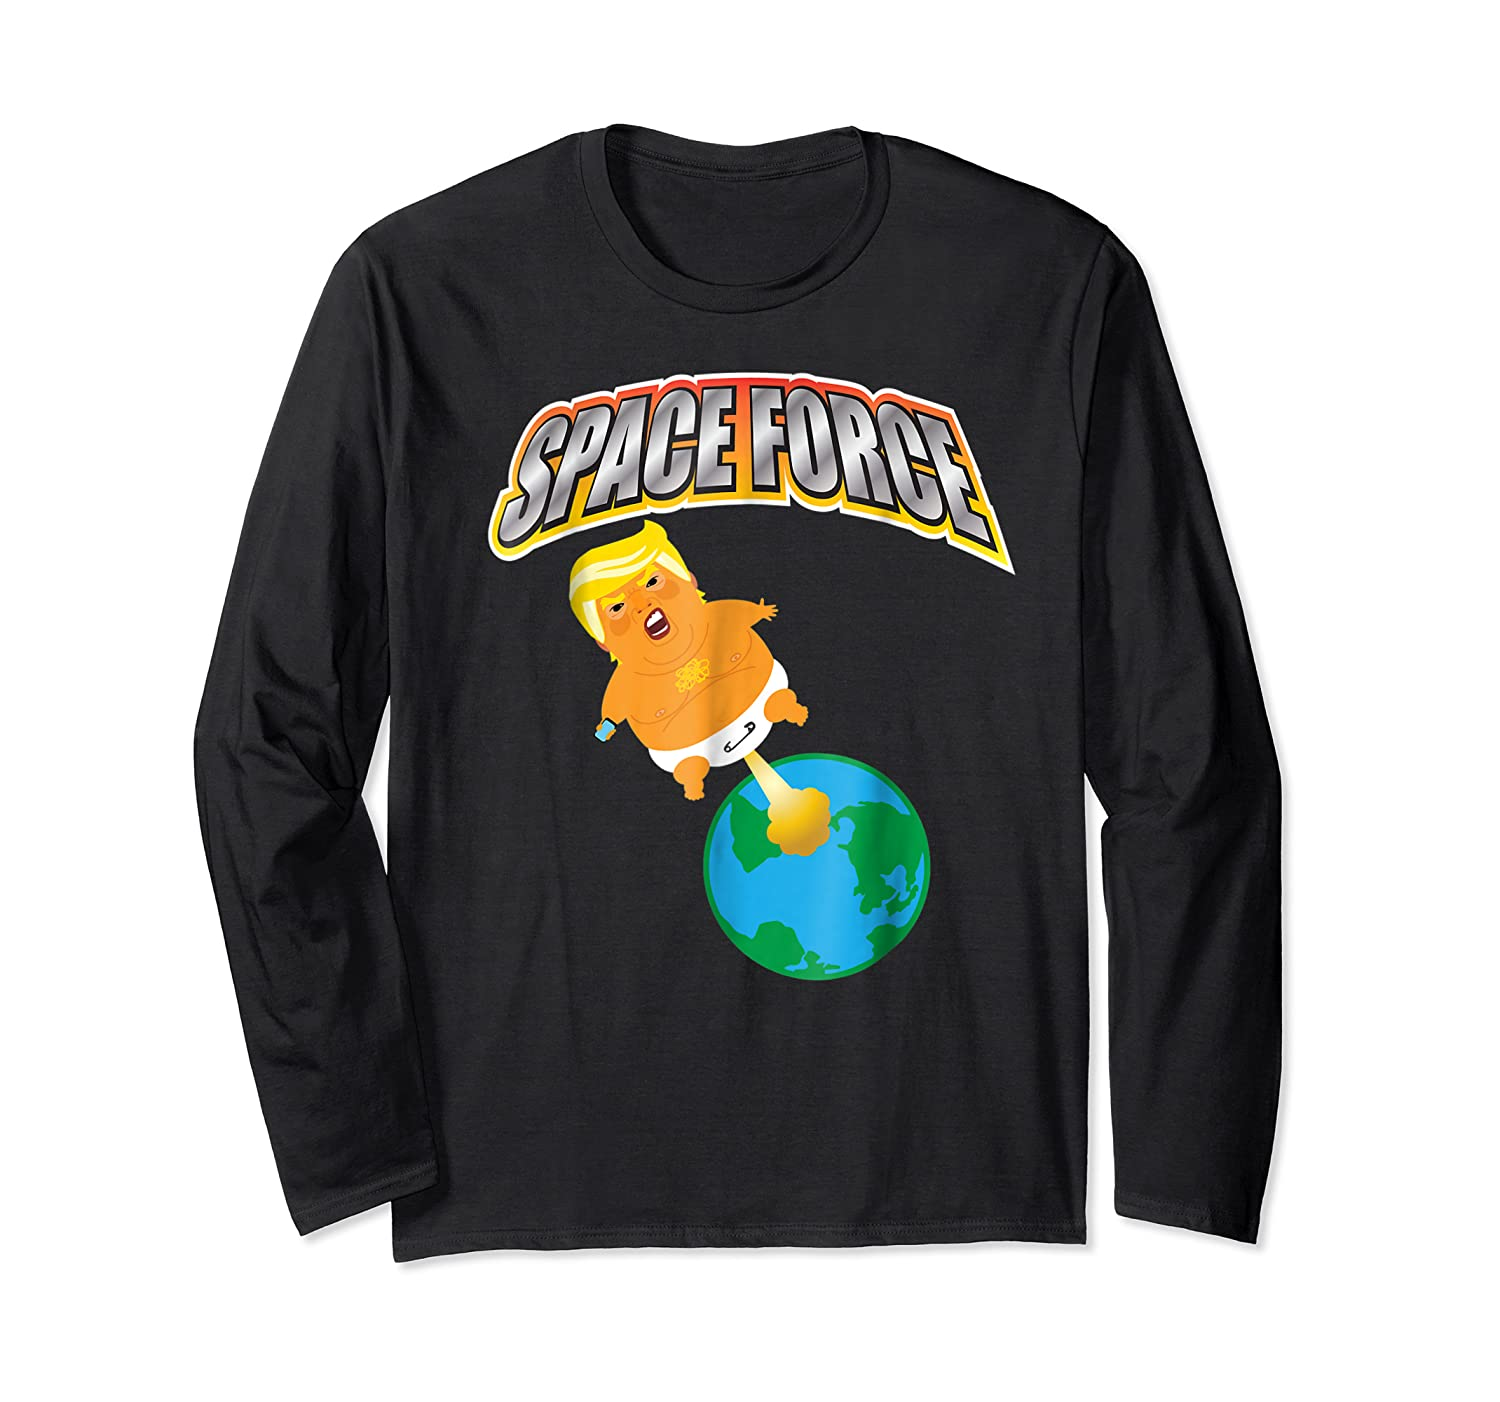 Anti Space Force Funny Donald Trump Gift Shirts Long Sleeve T-shirt